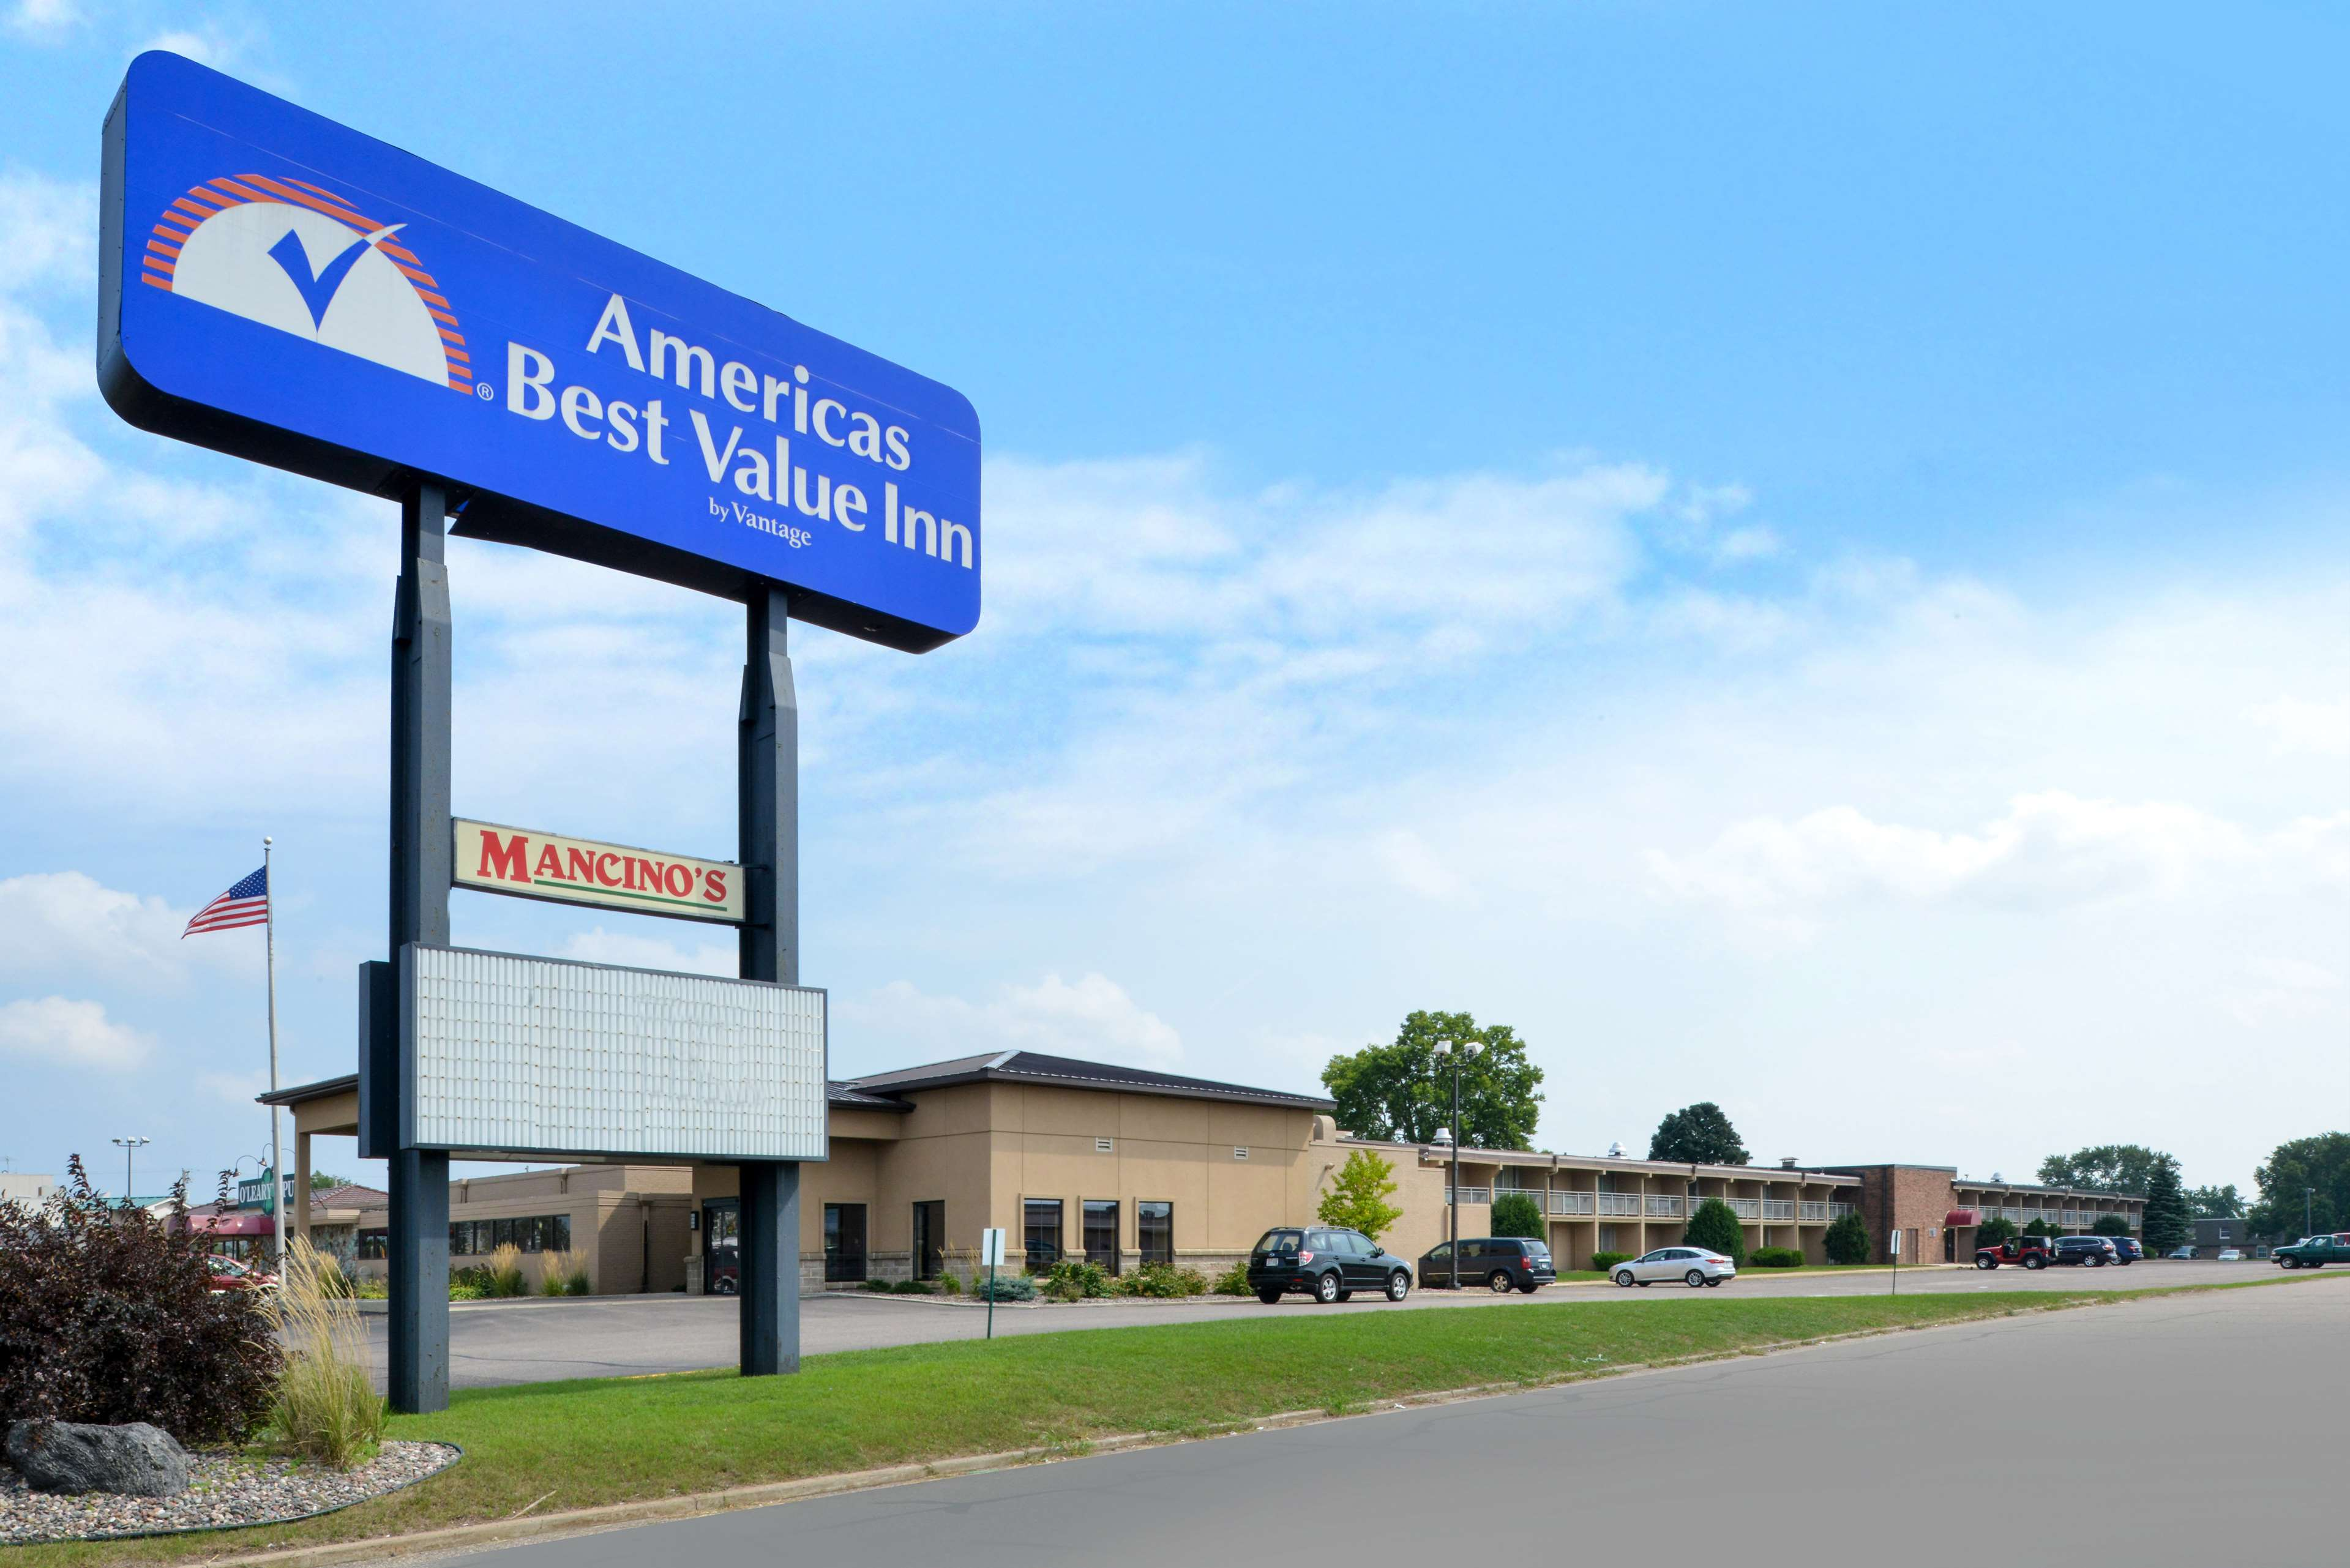 Americas best value inn campus view coupons near me in for Americas best coupons